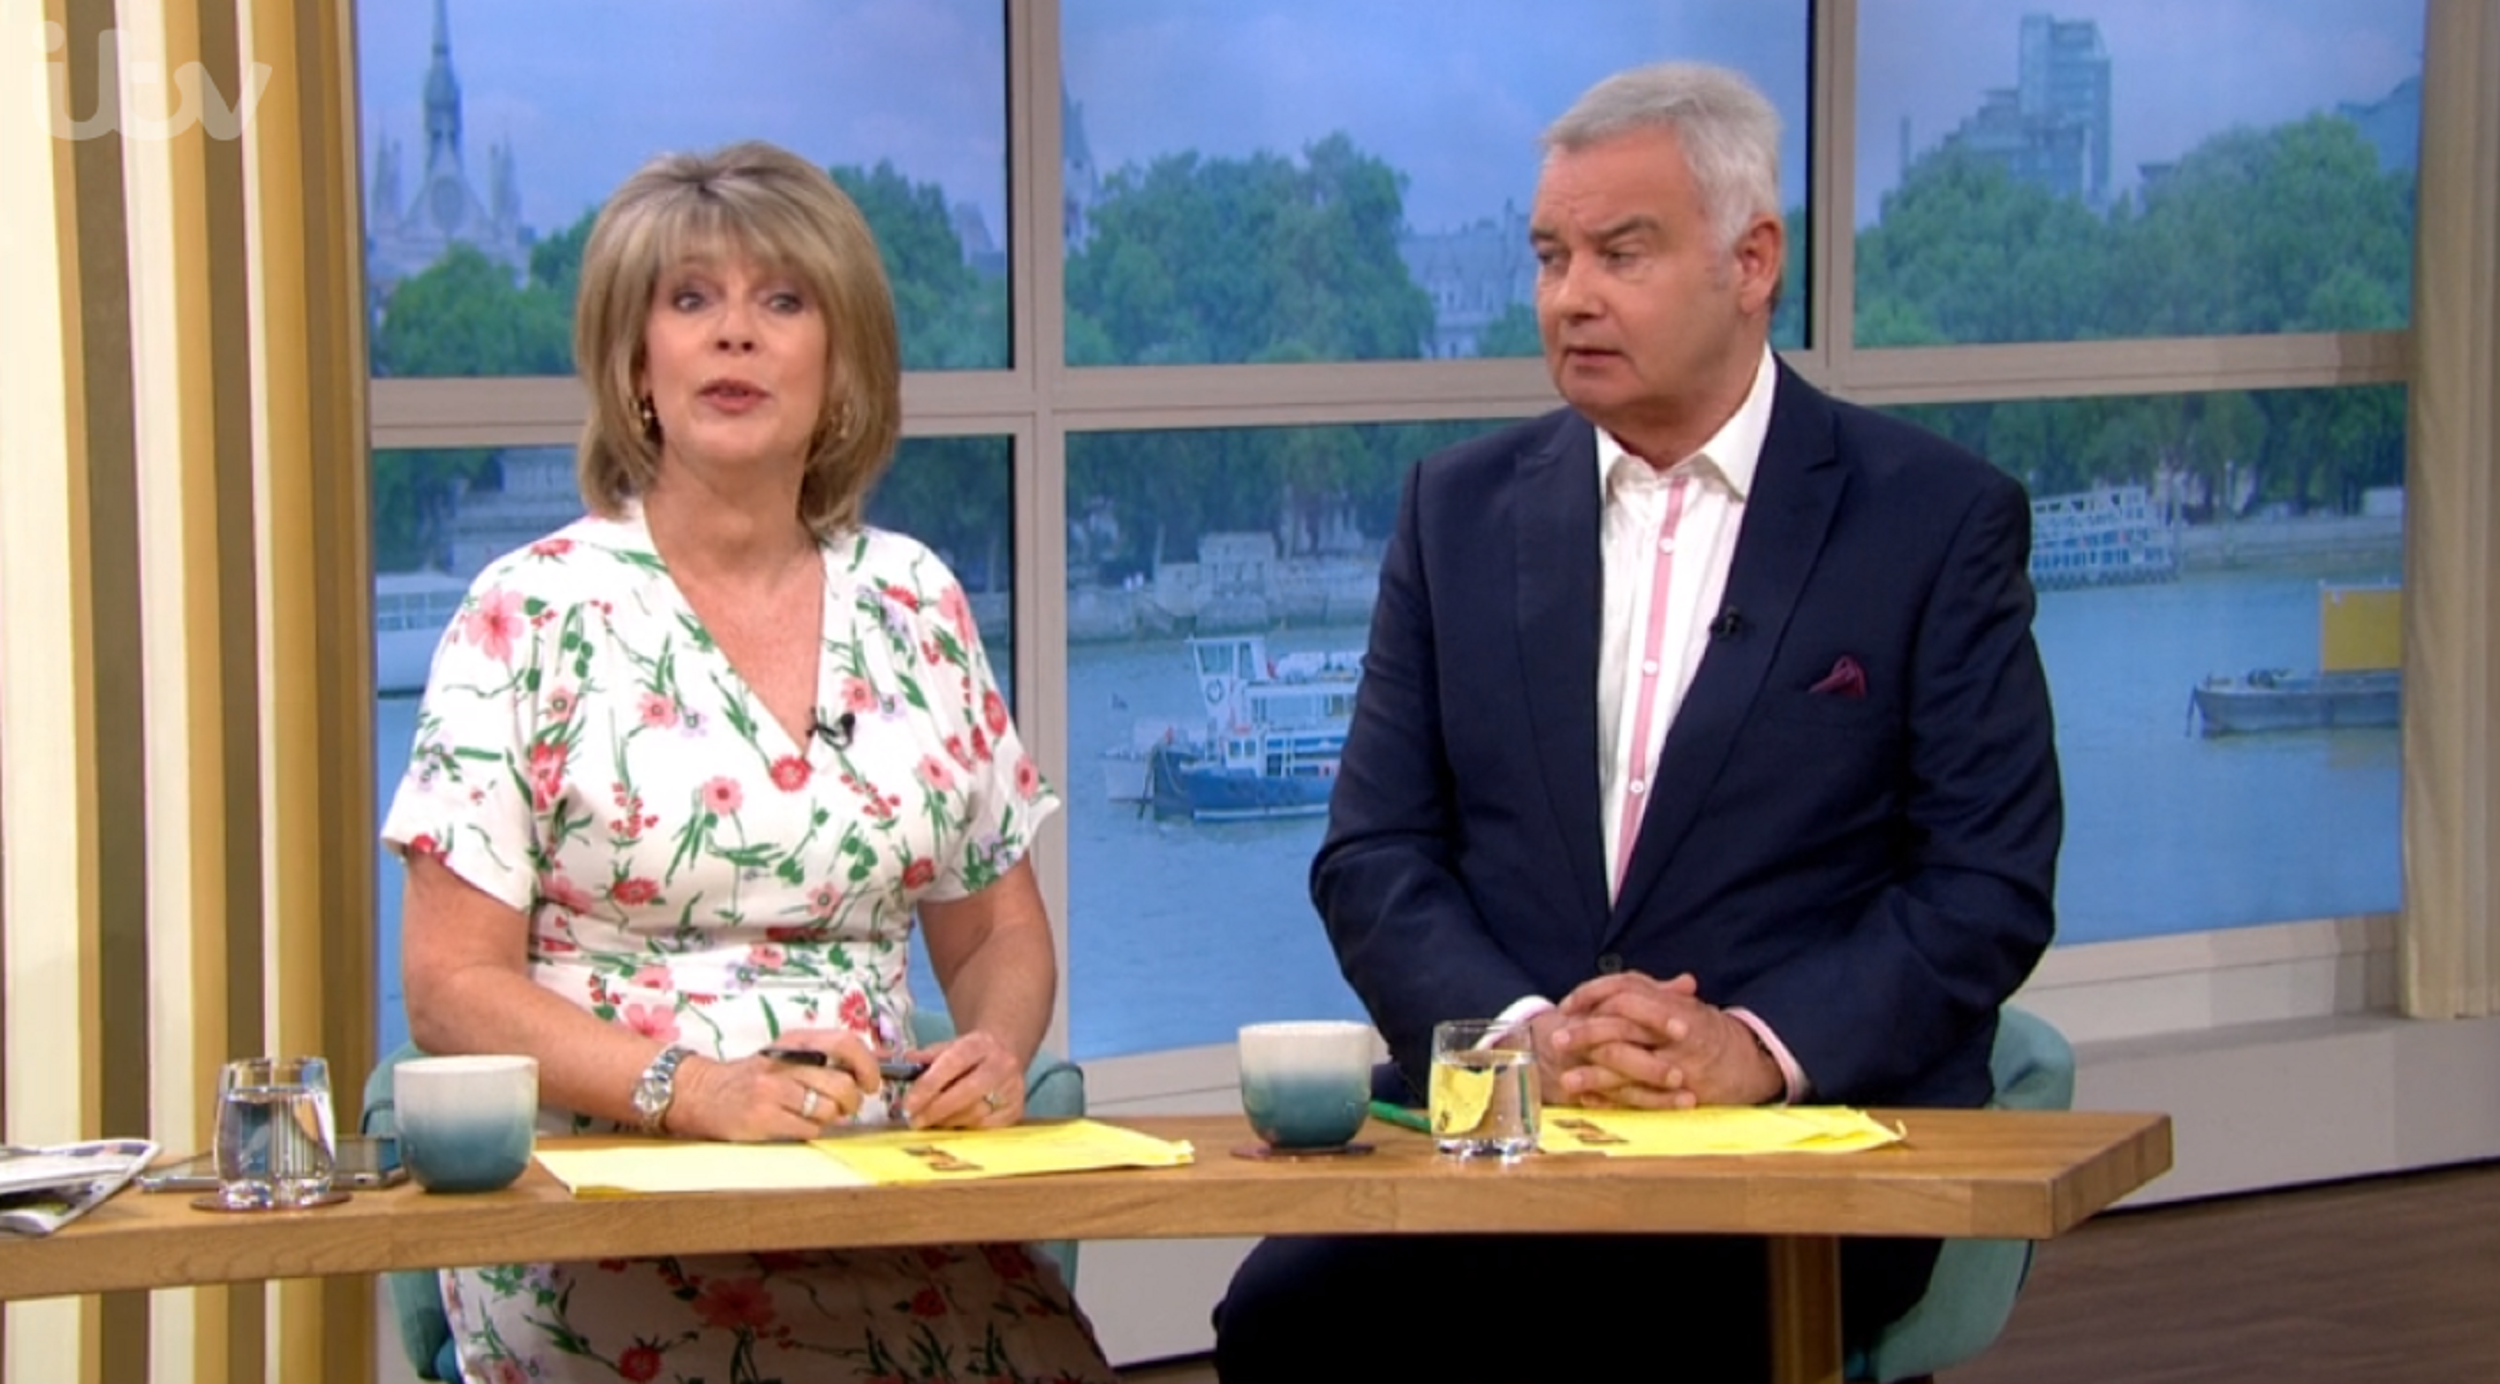 Ruth Langsford takes savage dig at life coach Nik Speakman live on This Morning